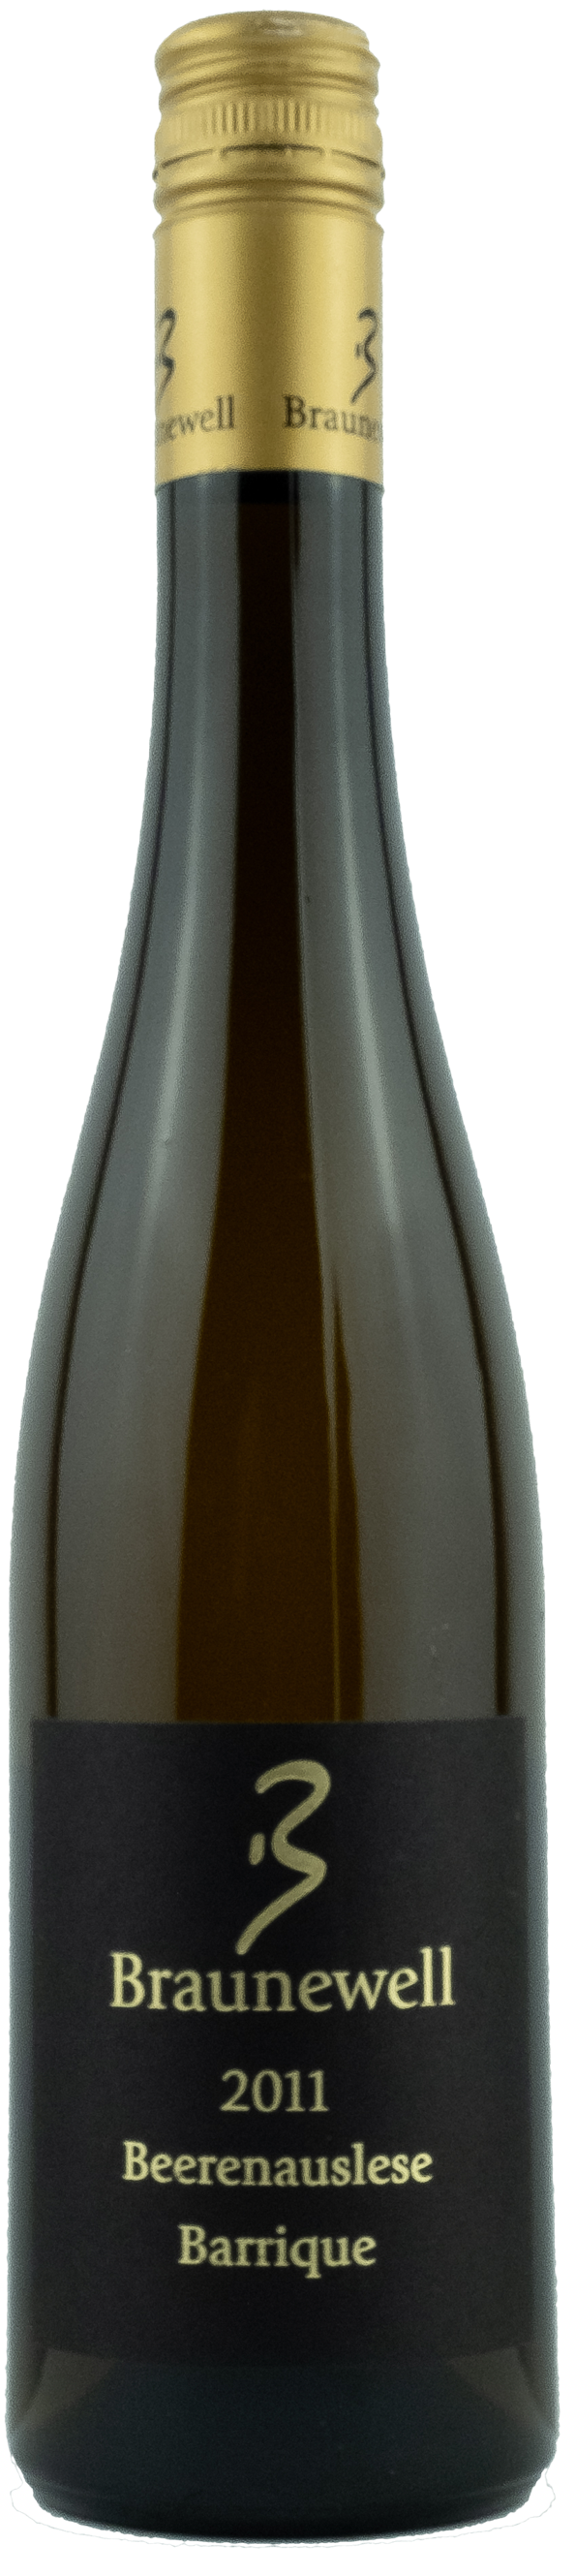 Braunewell Beerenauslese Barrique 2011